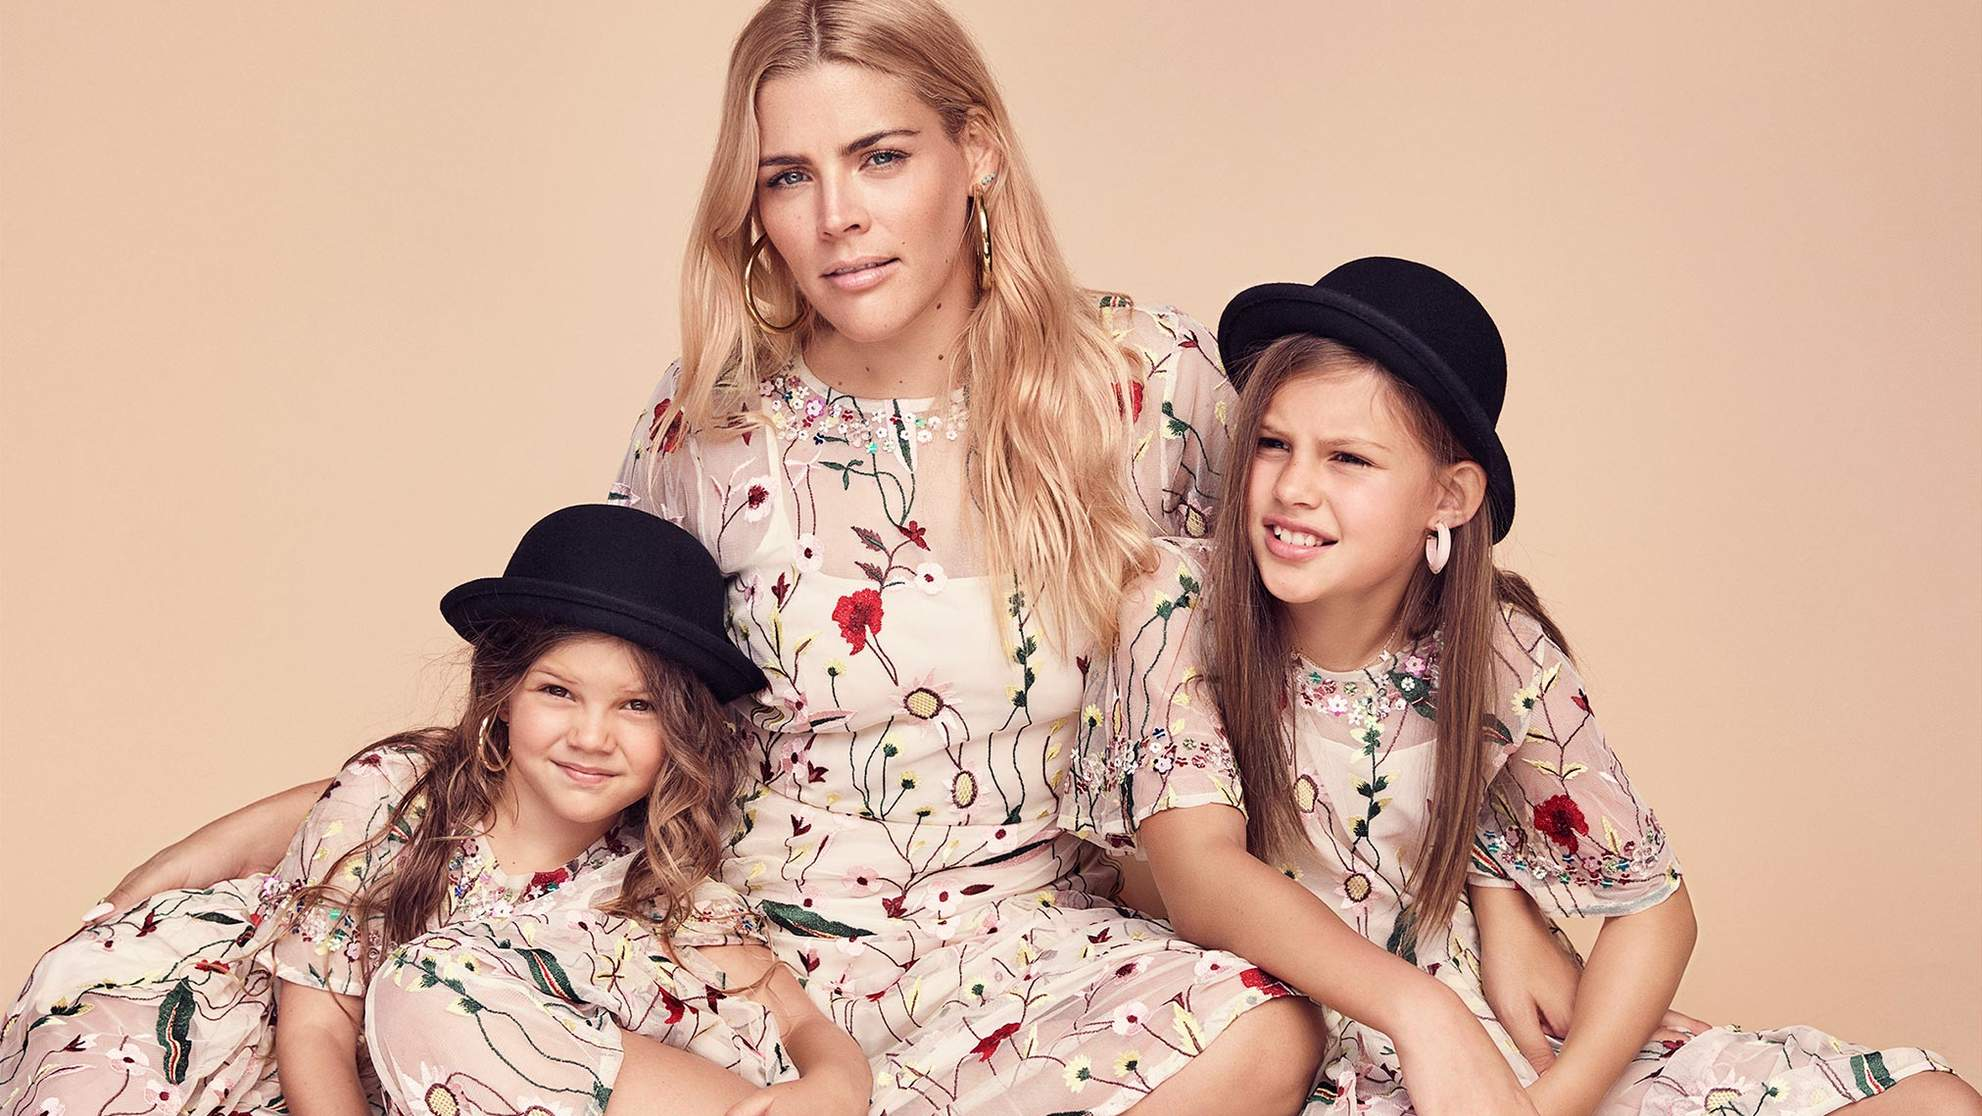 Busy Philipps Cries Recalling Her Sexual Assault at Age 14: 'We Can Do Better for Our Kids'